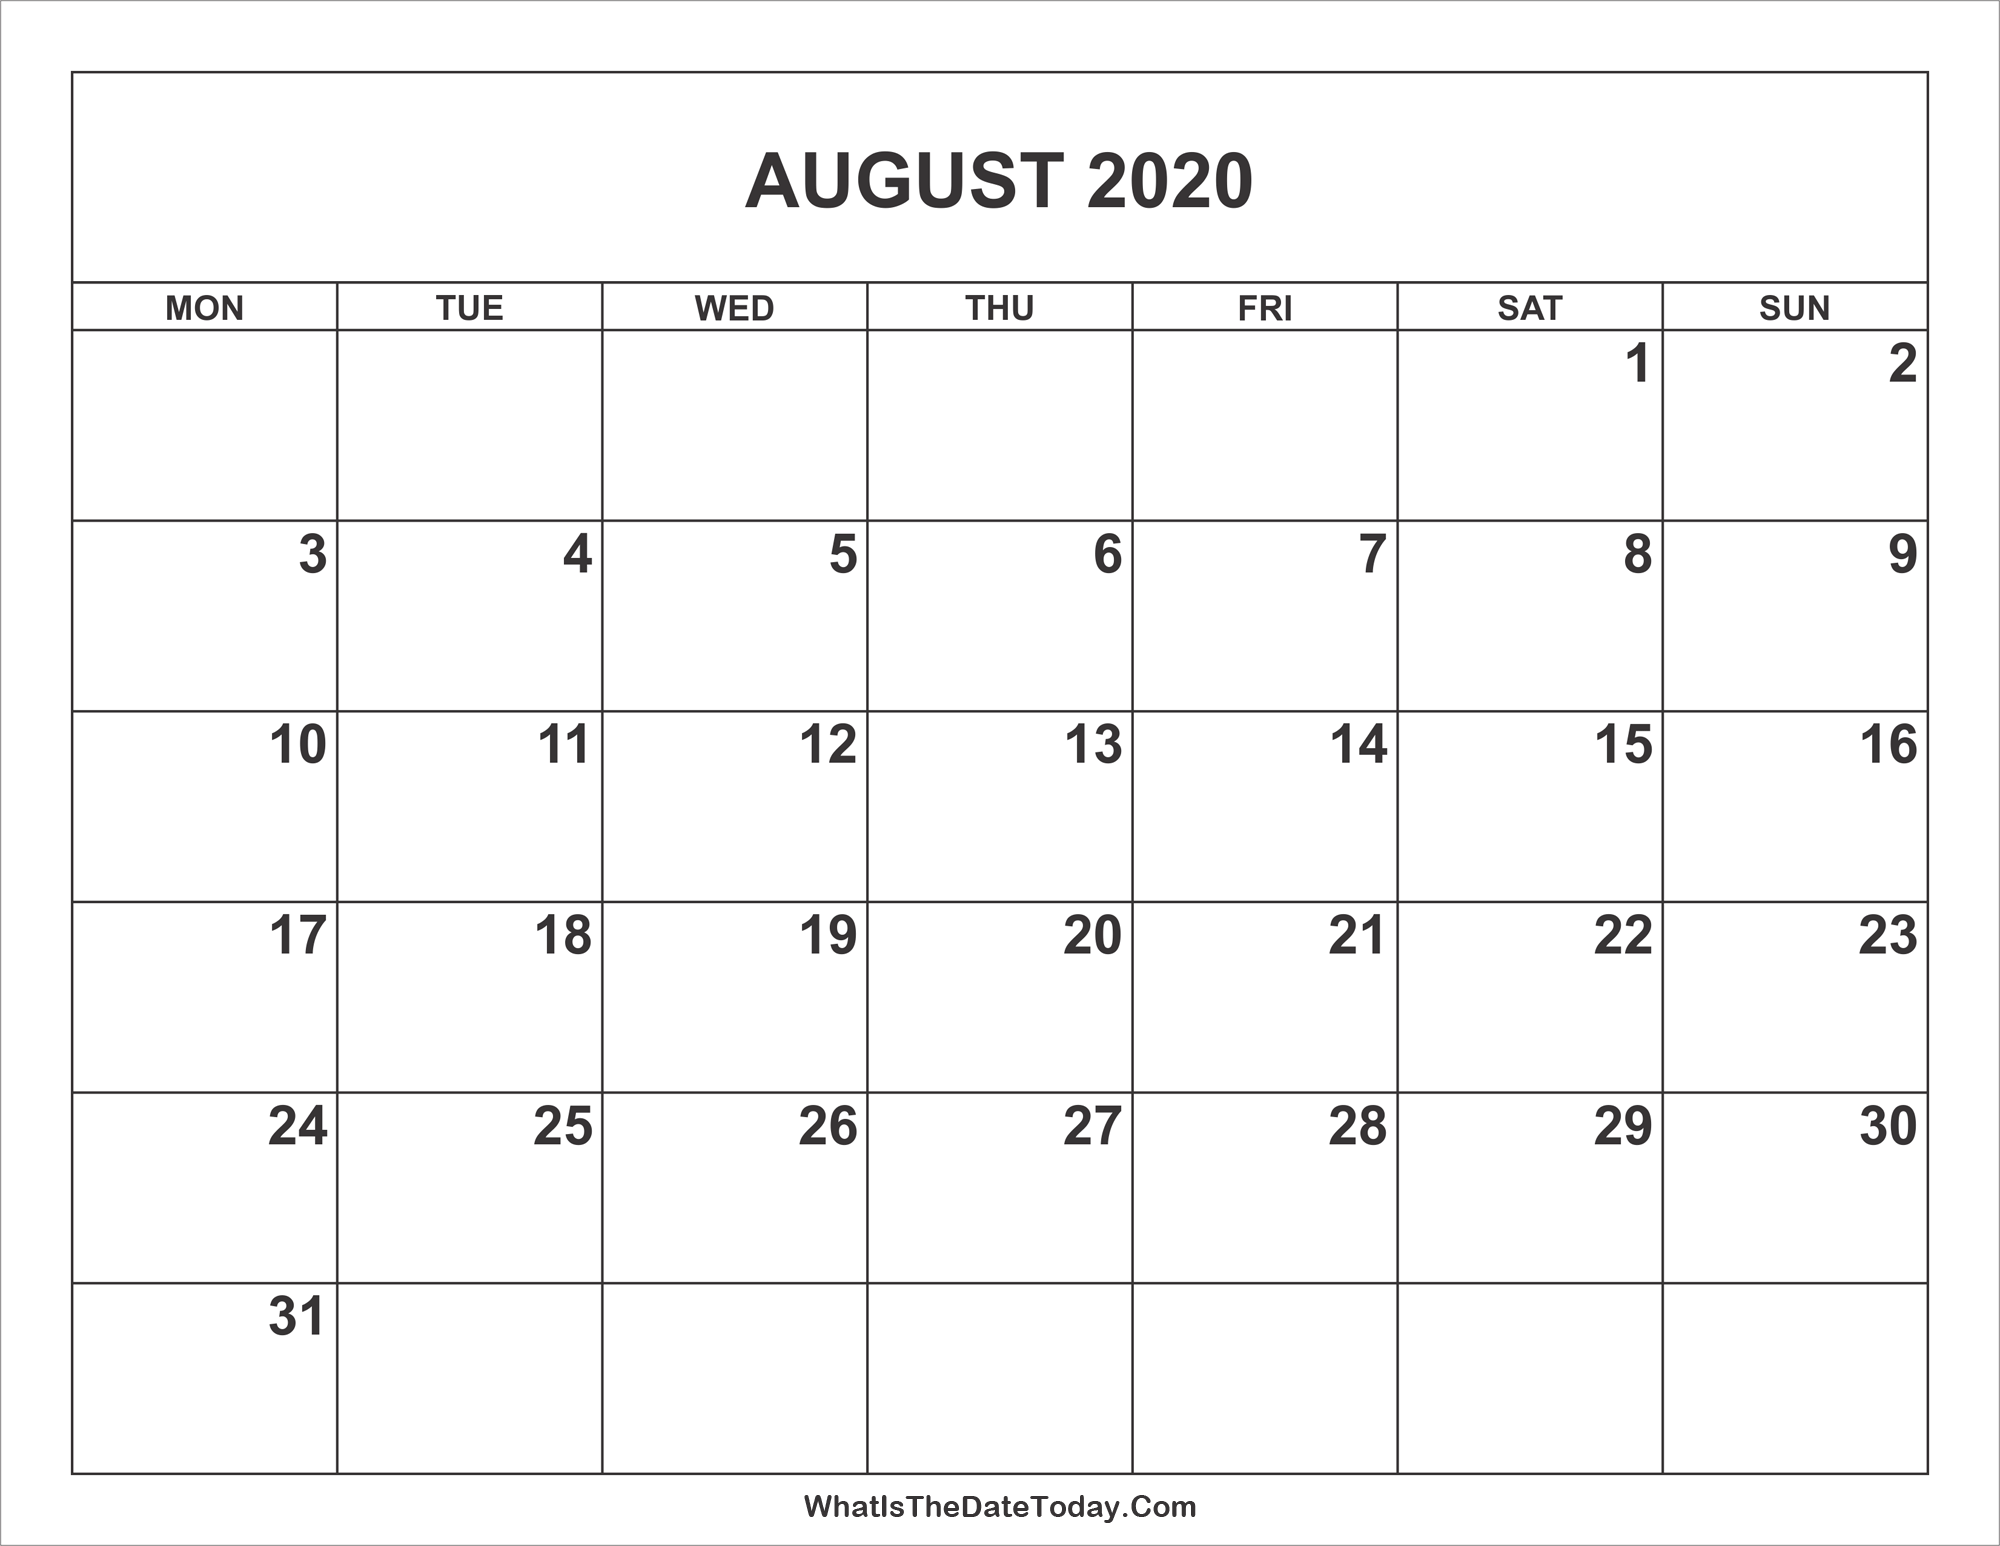 Calendar Aug 2020 Top 10 Punto Medio Noticias | August 2020 Calendar Dates